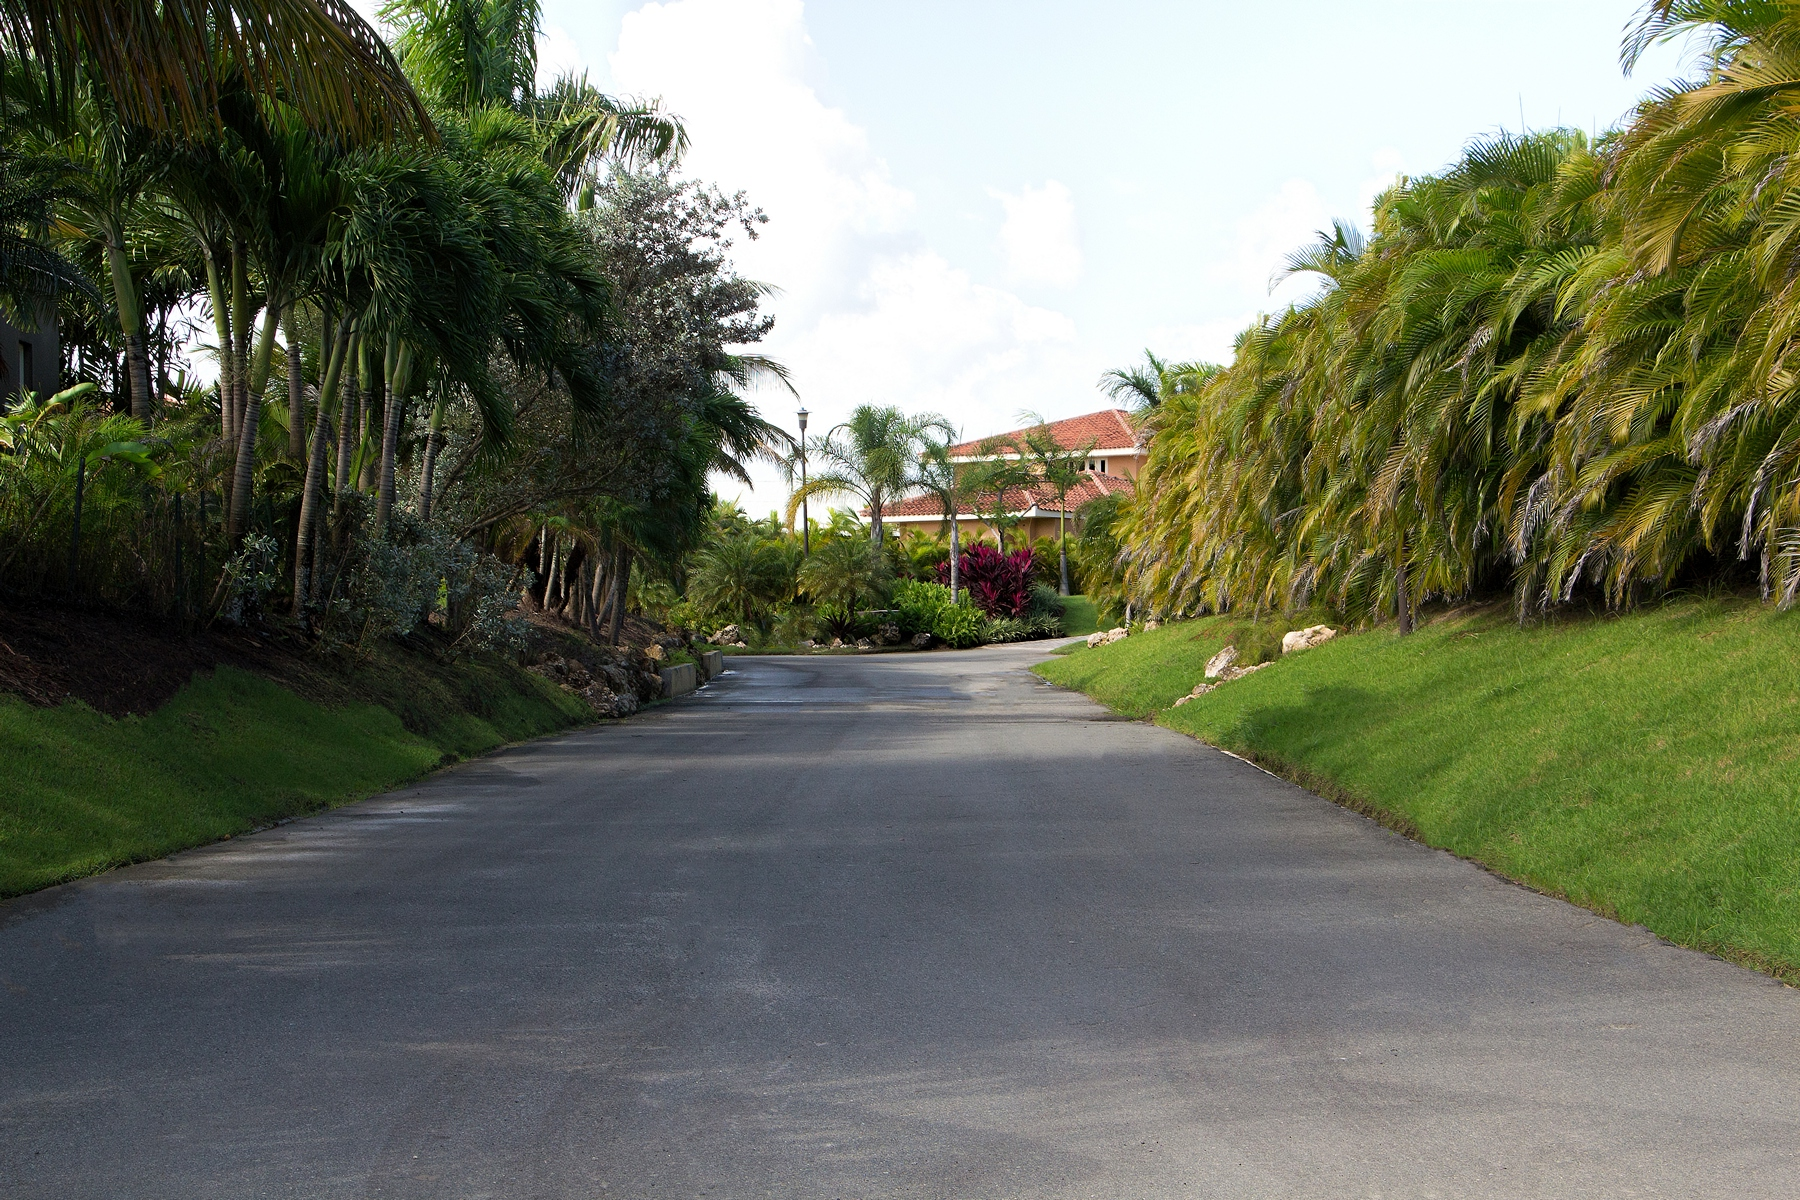 Additional photo for property listing at Dorado Beach East Unique Lot Opportunity 323 Dorado Beach East Dorado Beach, 波多黎各 00646 波多黎各